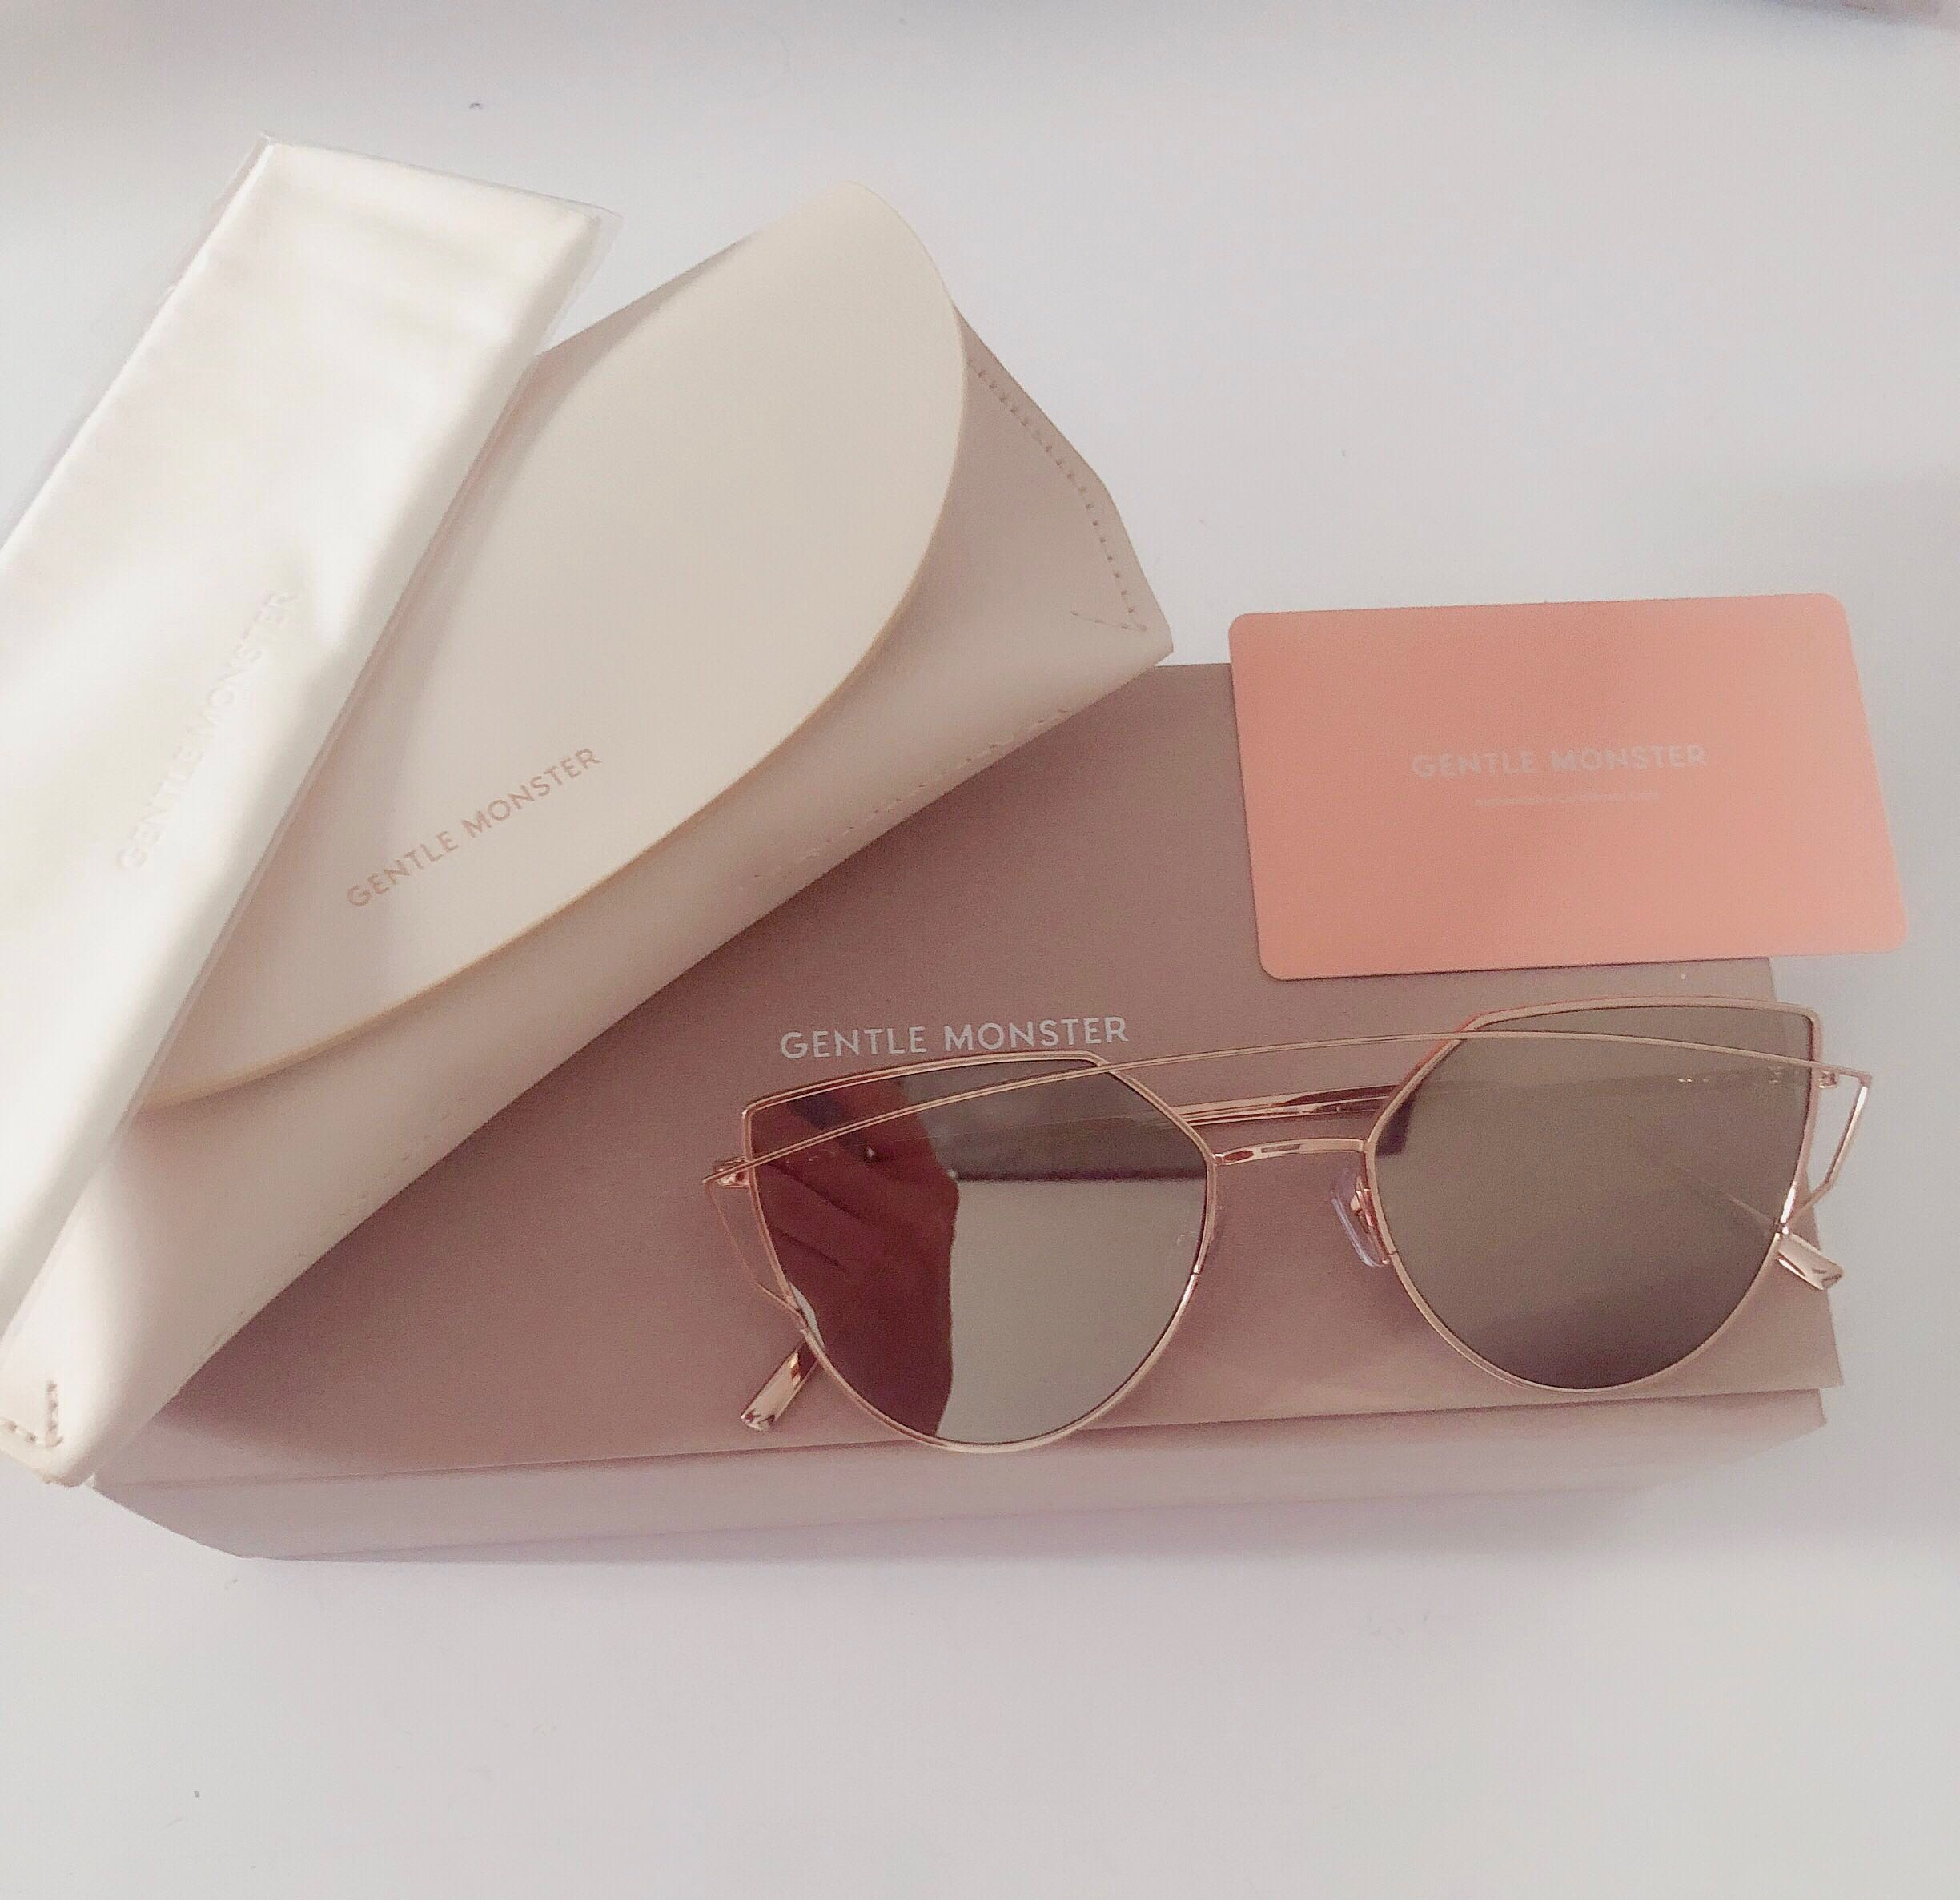 7afdc3f5eacc Home · Women s Fashion · Accessories · Eyewear   Sunglasses. photo photo  photo photo photo